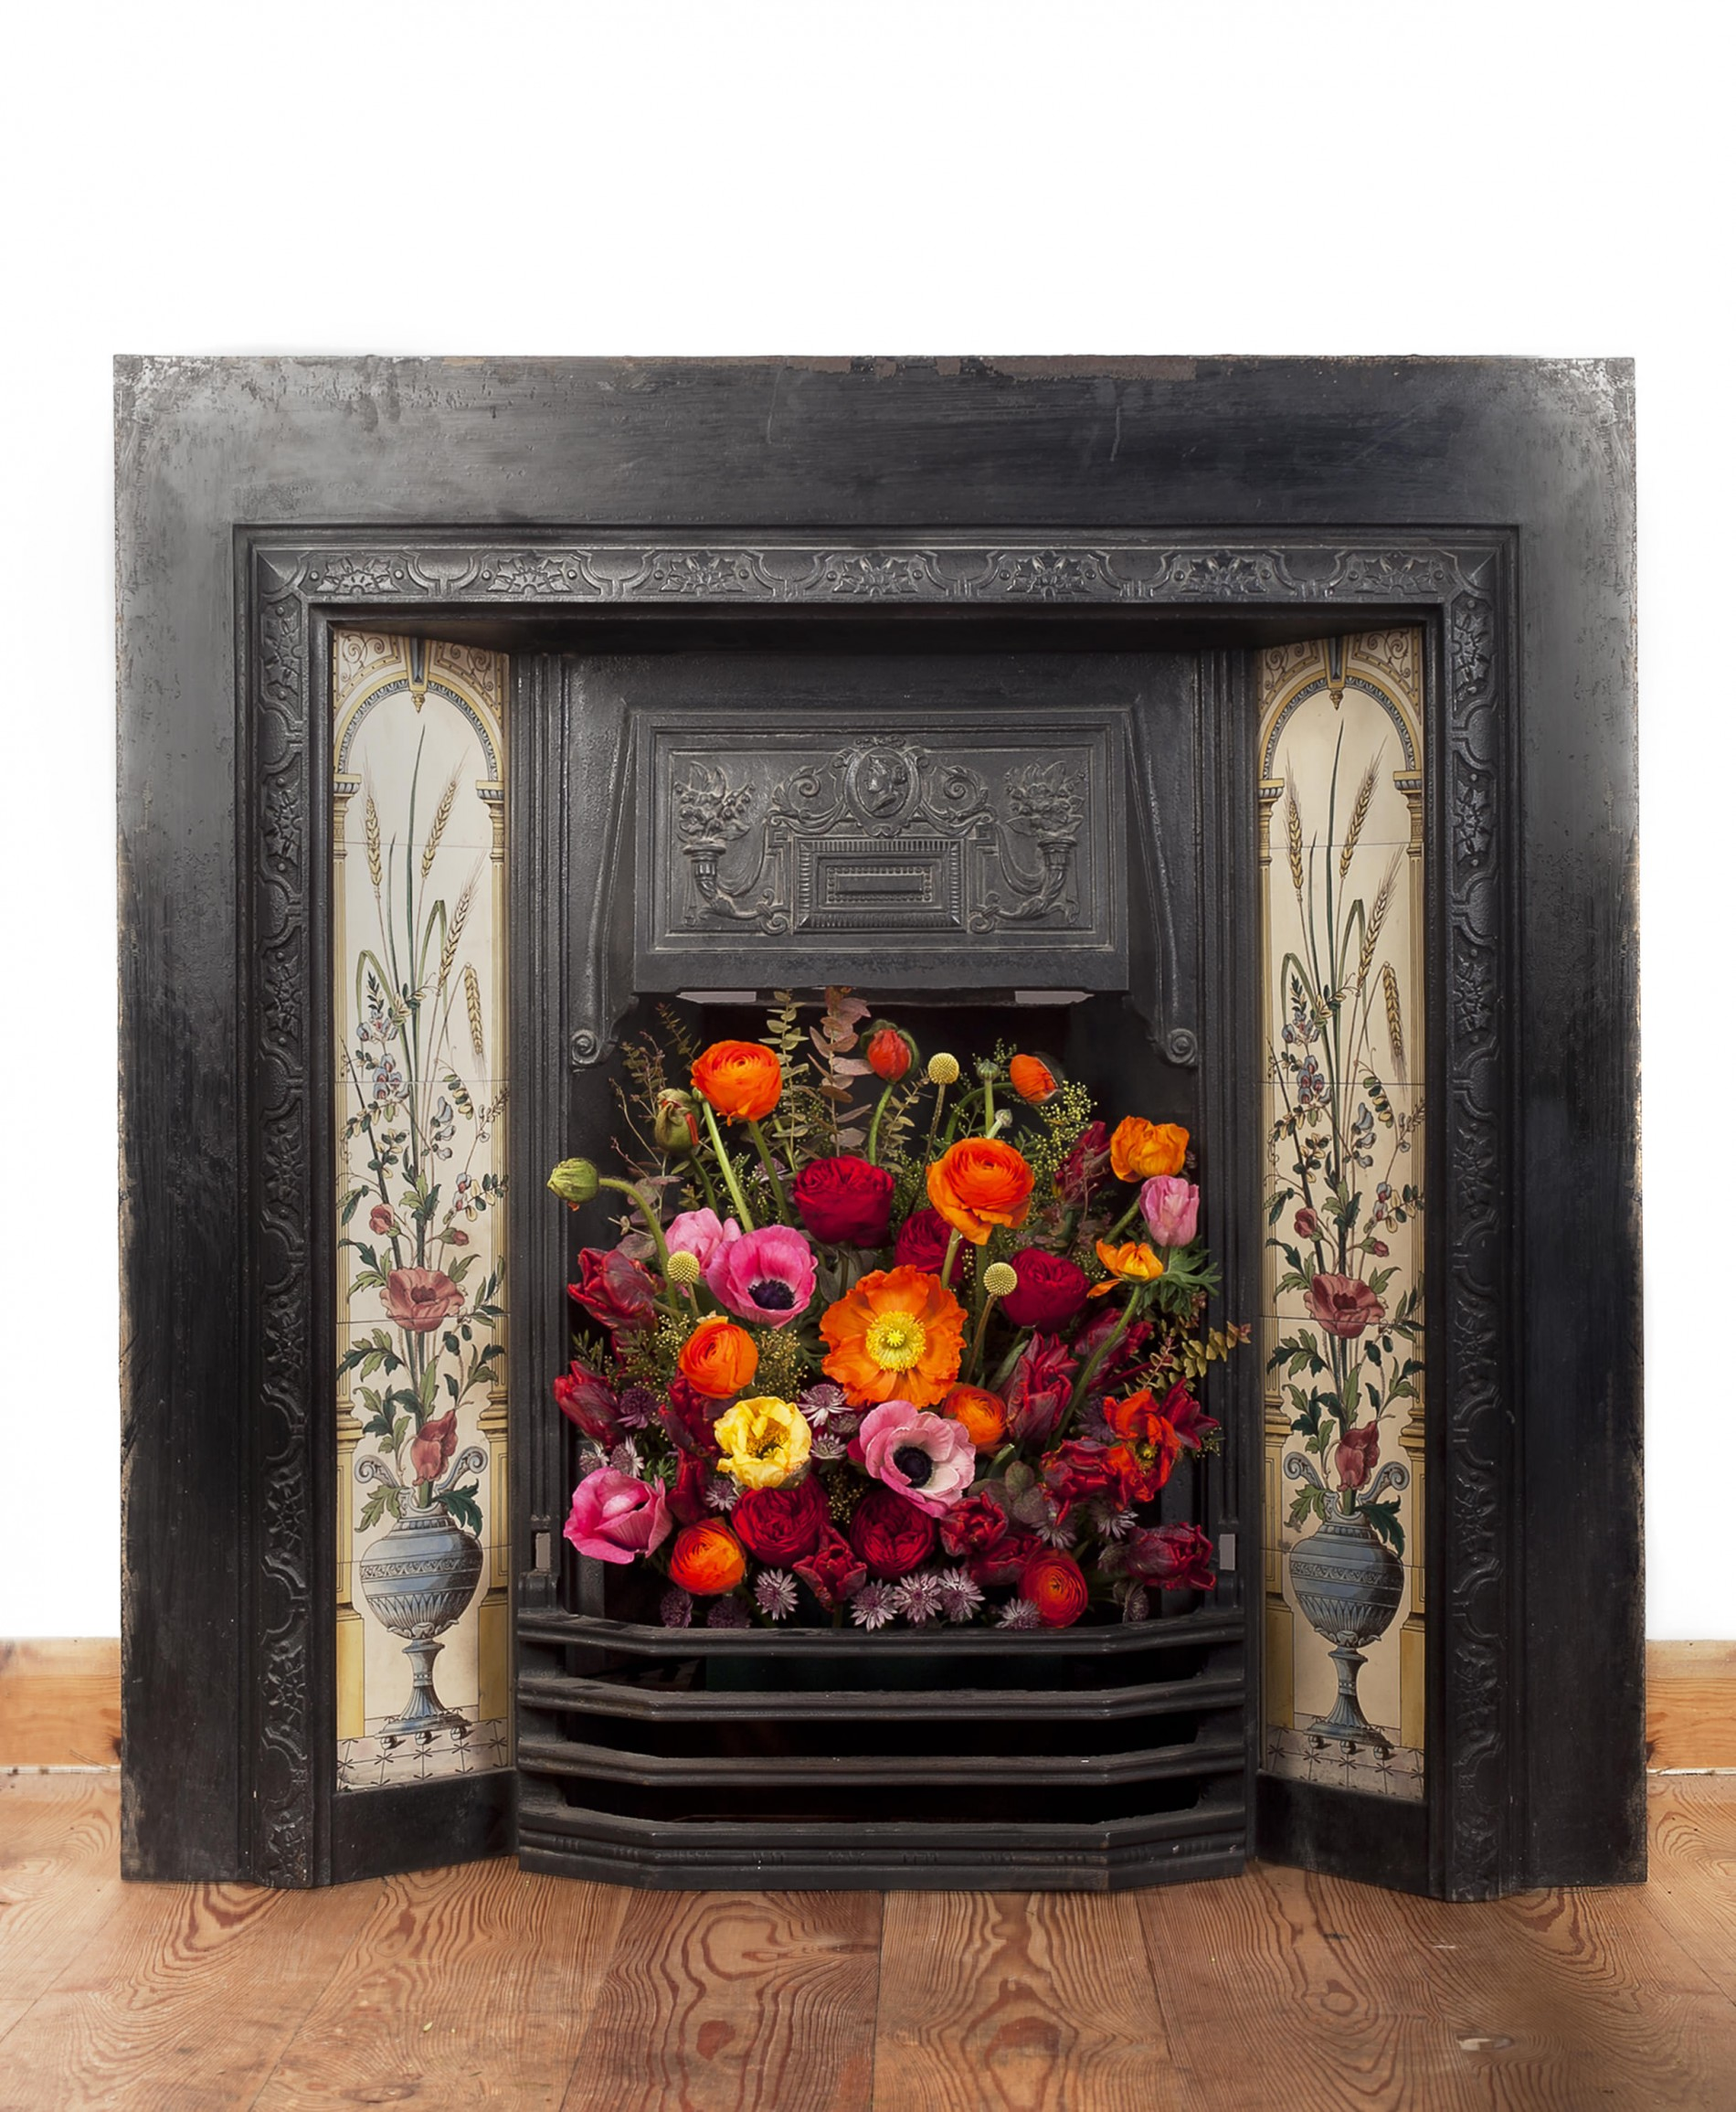 Flowers in a fireplace